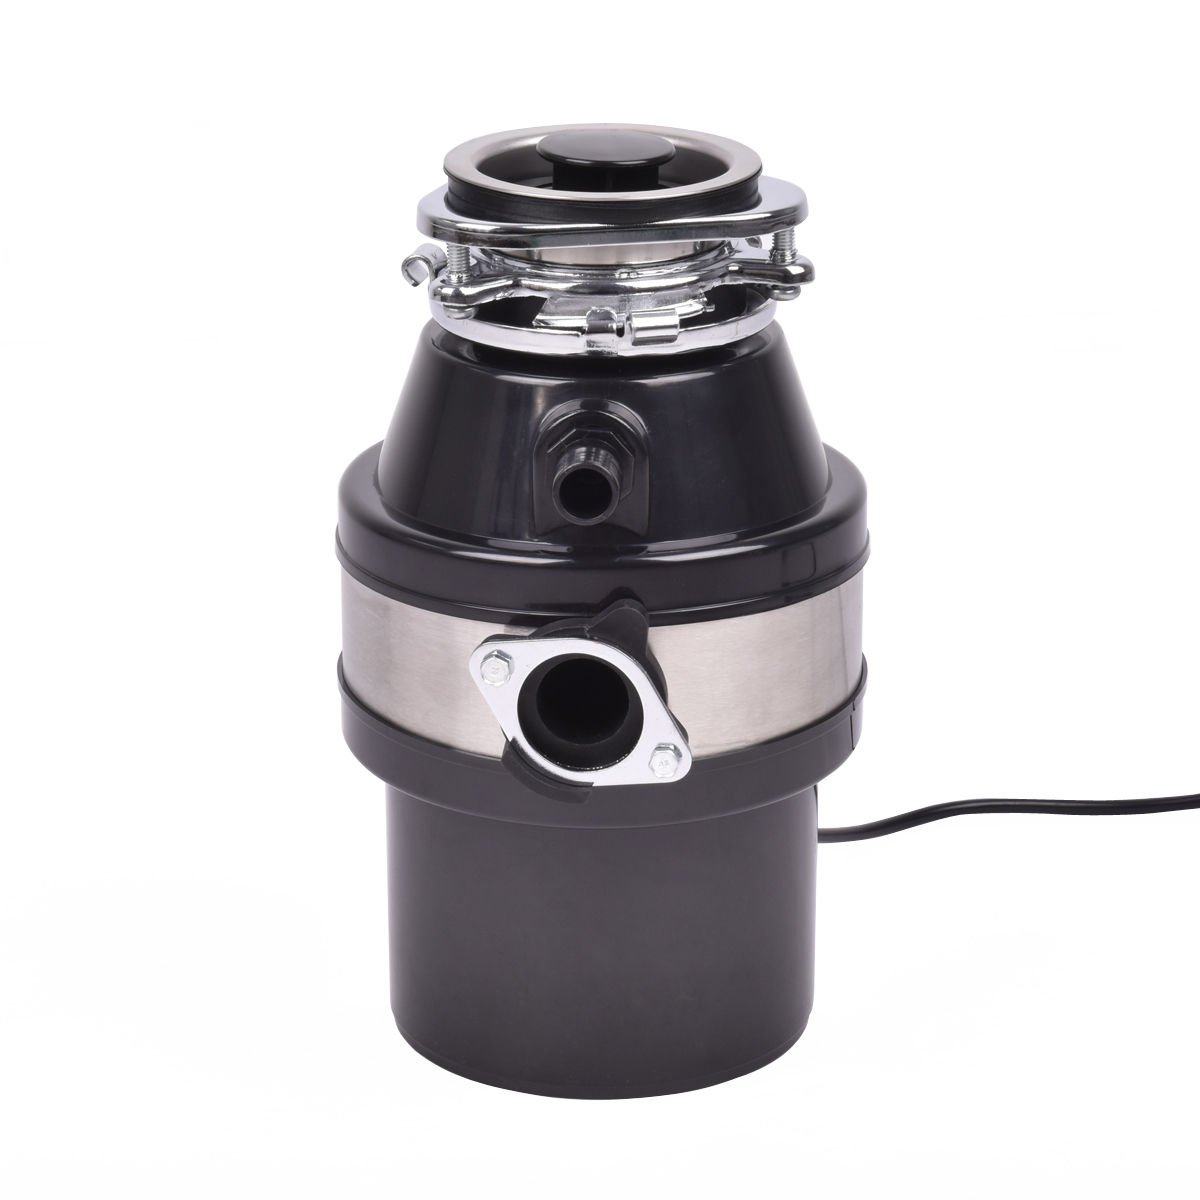 1.0HP 2600RPM Garbage Disposal Continuous Feed Home Kitchen Food Waste Disposer